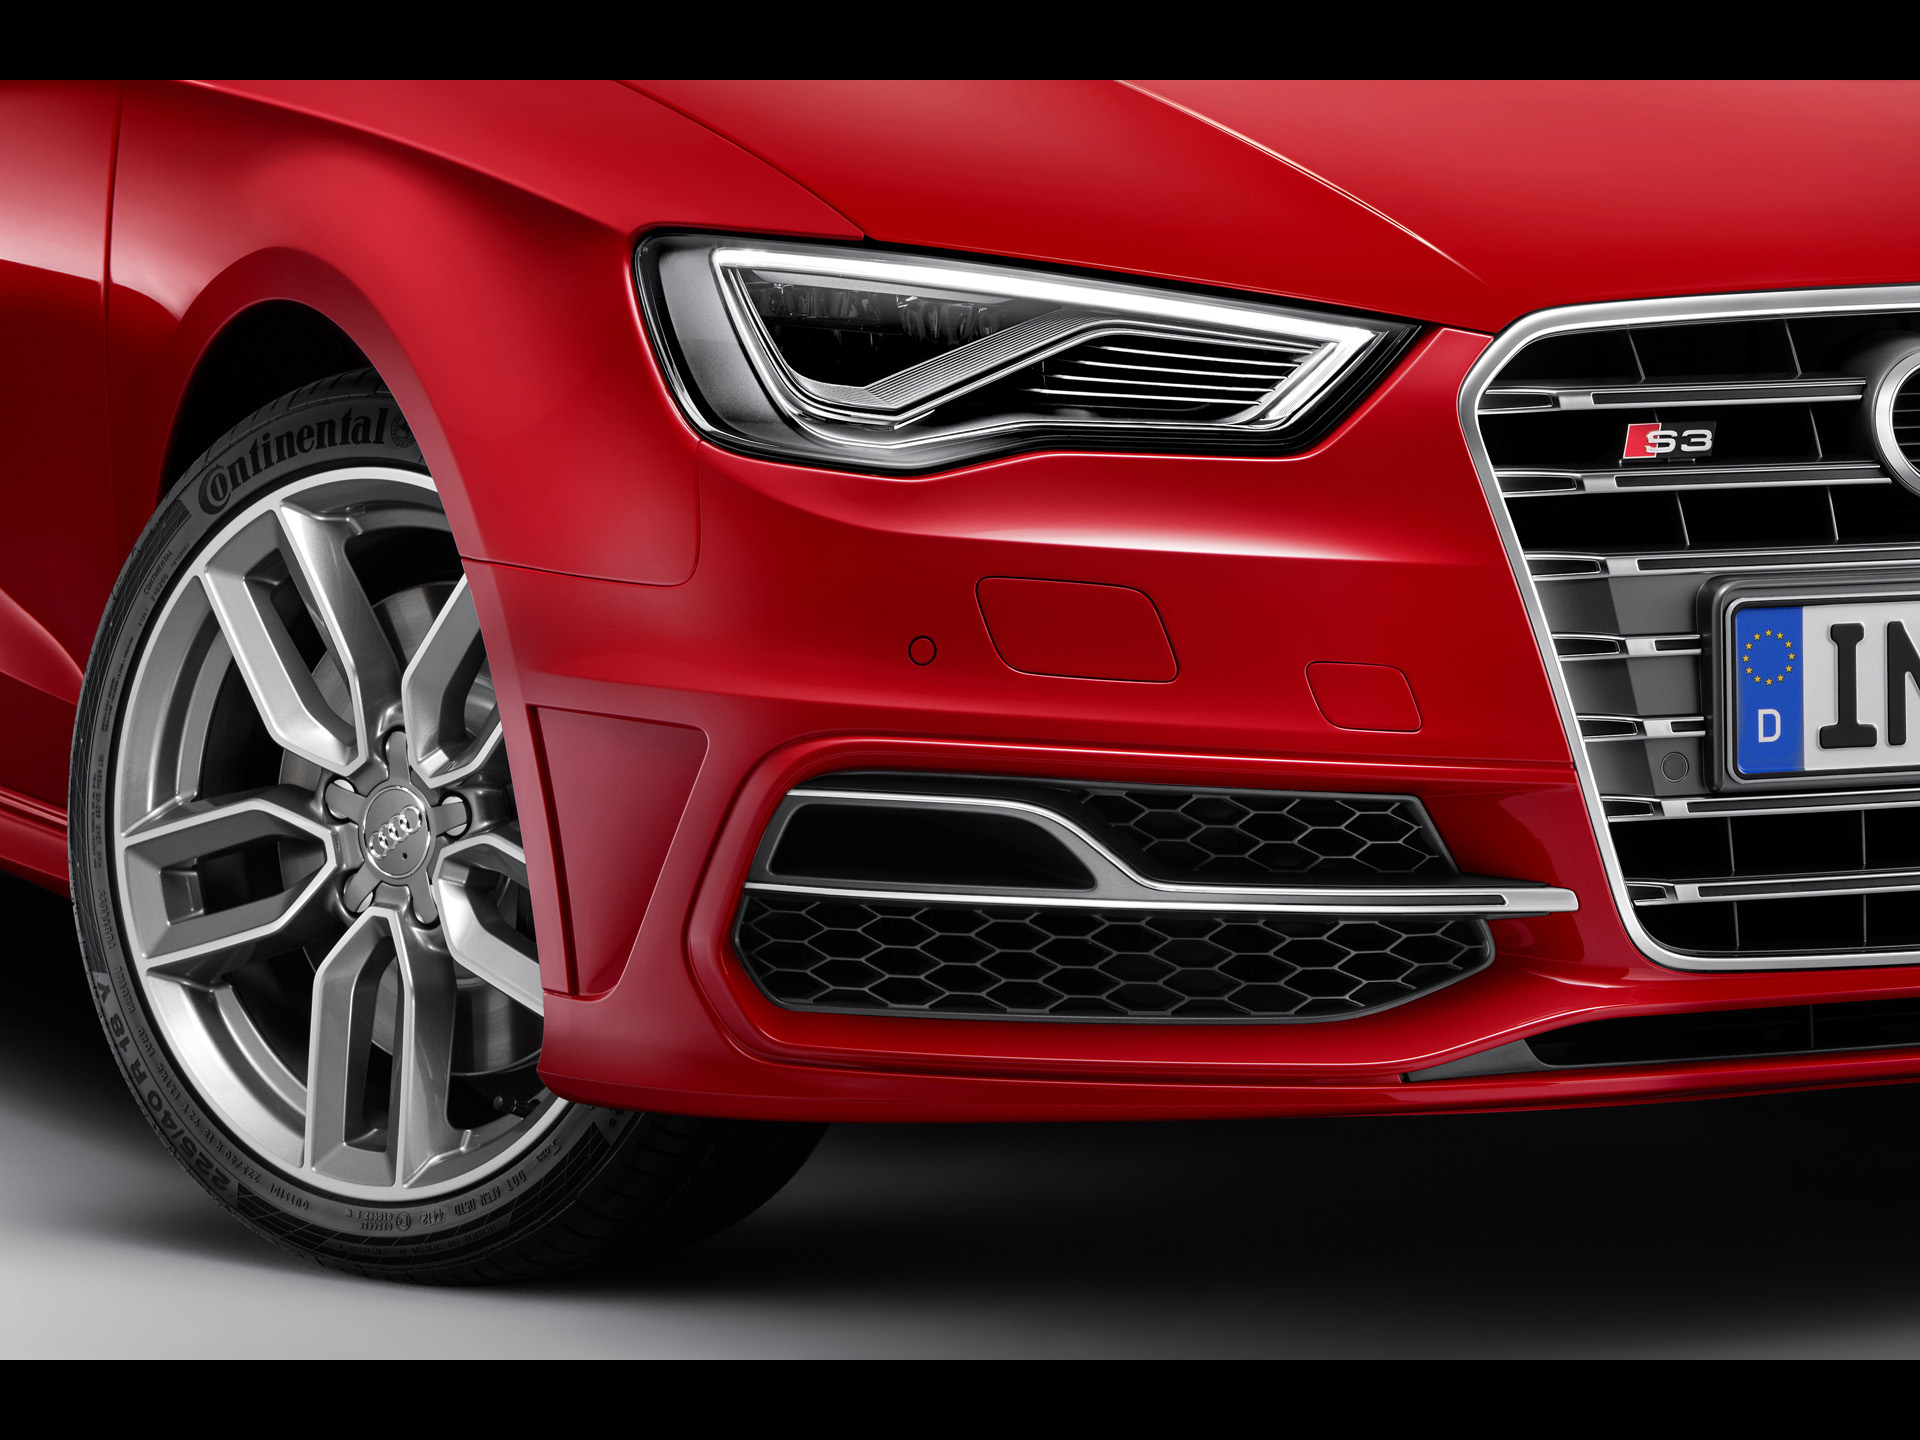 Super Car Photos of Audi S3, Take a Close Look at Its Wheels and Sharp Headlights 1920X1440 free wallpaper download